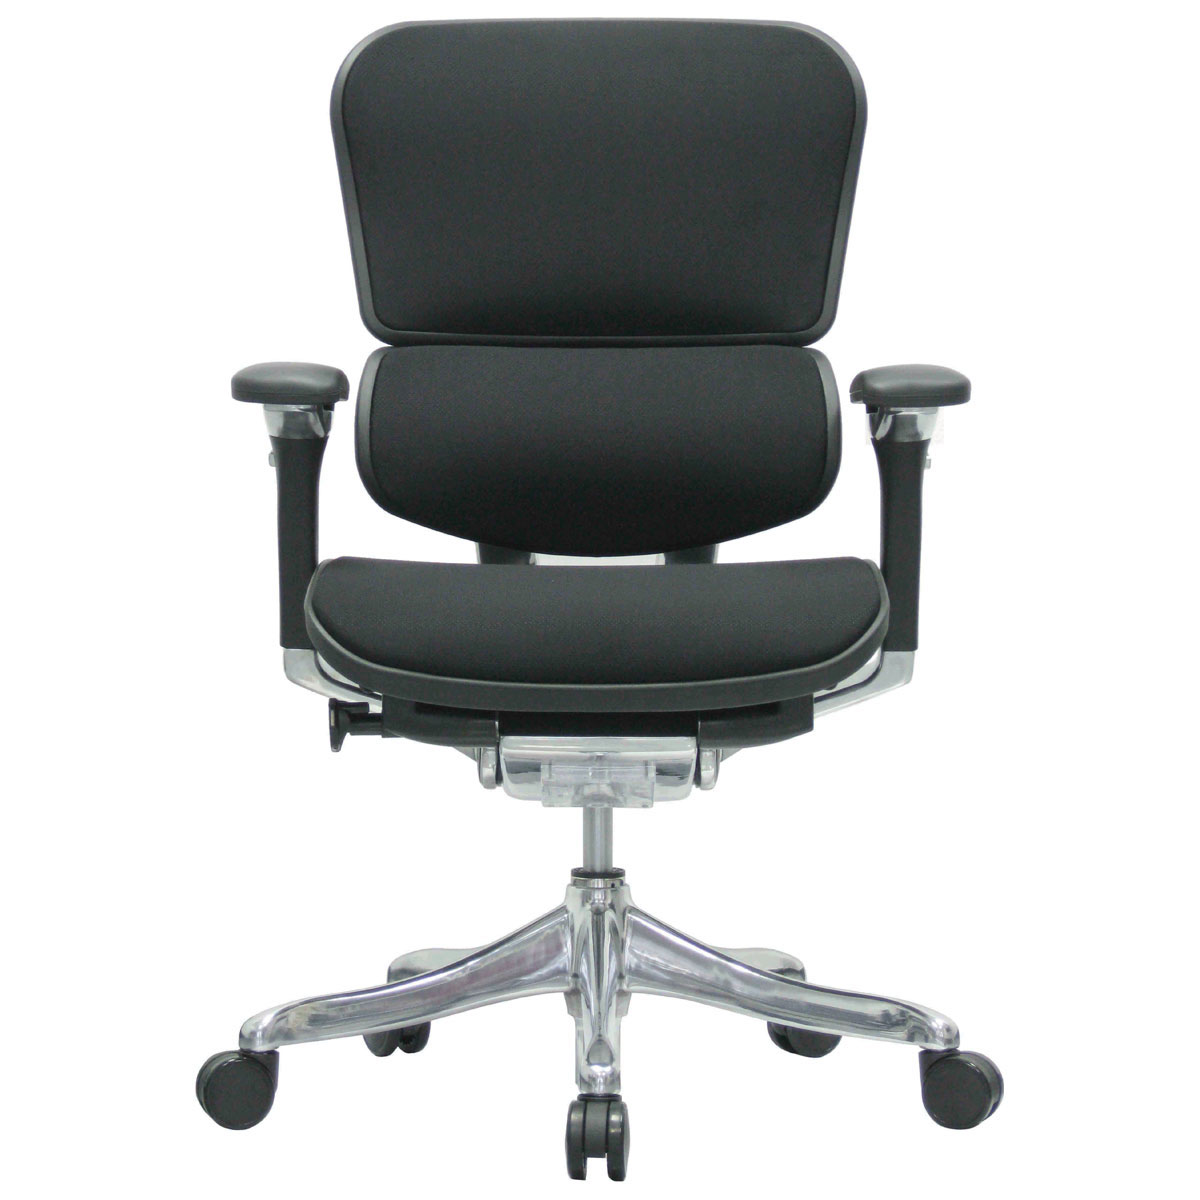 Raynor Chairs Raynor Ergohuman V2 Chair V200fblk Shop Ergohuman Chairs